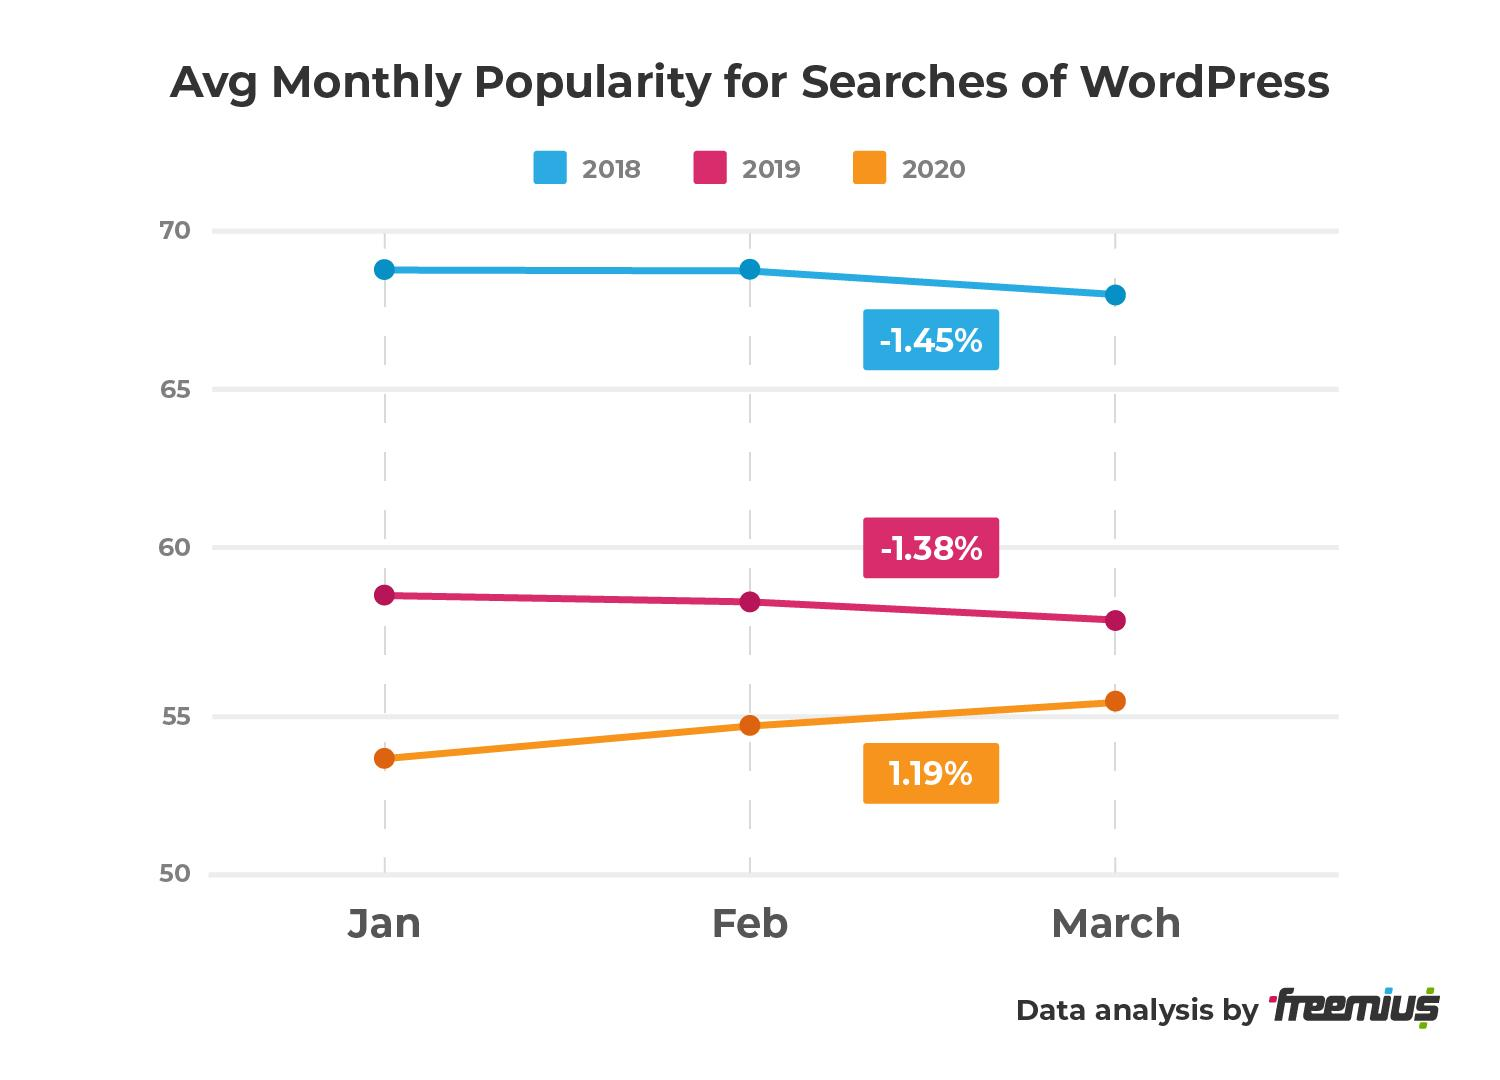 Freemius data analysis - Avg Monthly Popularity for Searches of WordPress - percentage